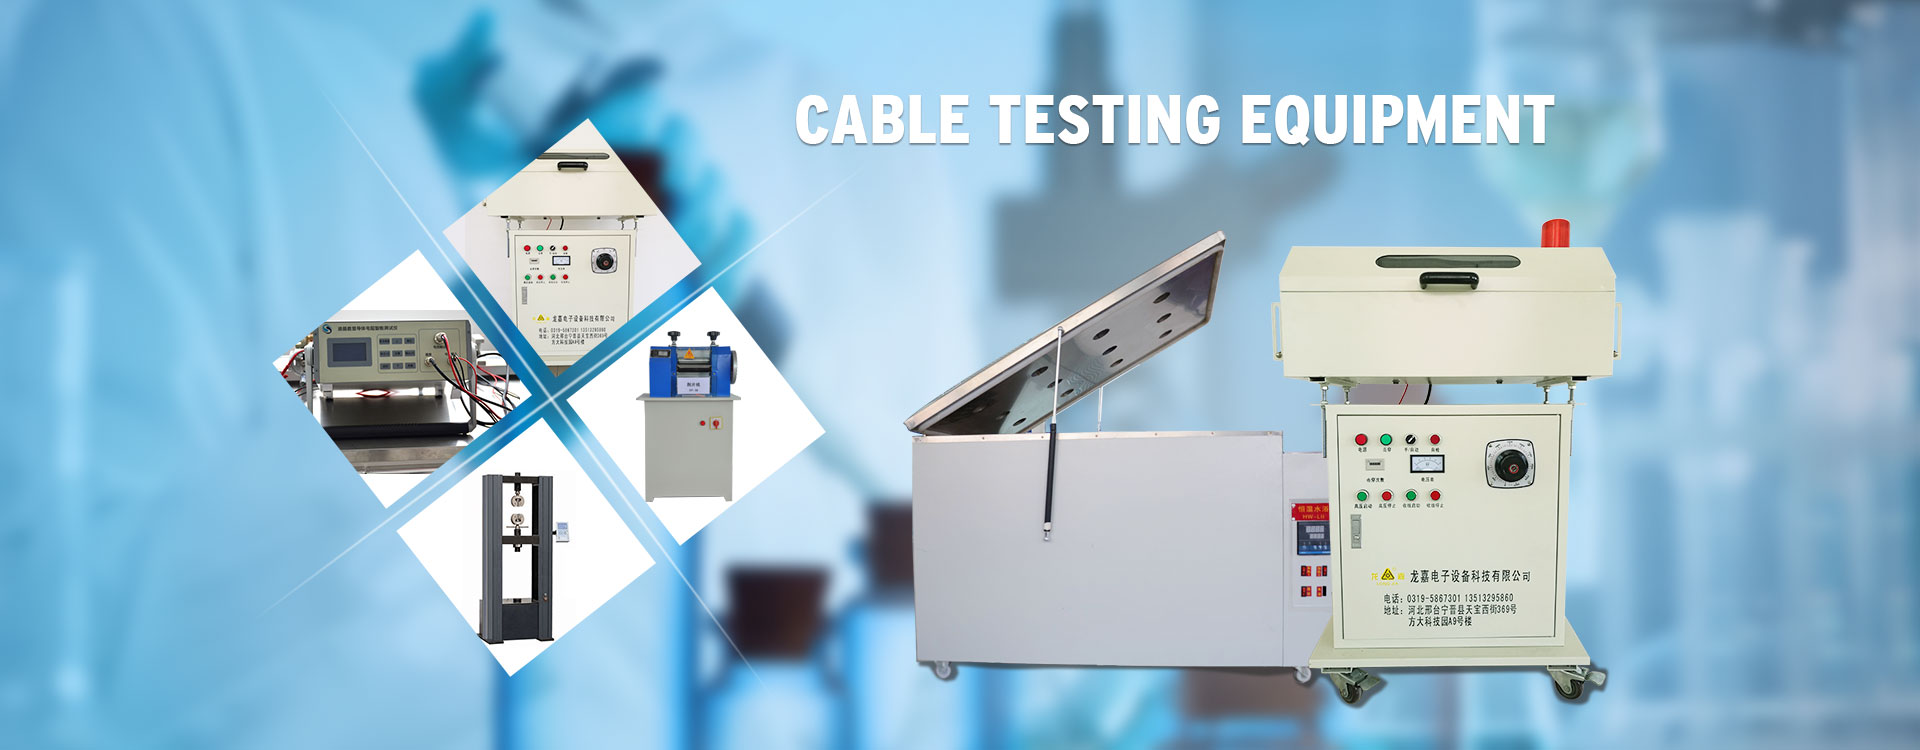 https://www.ljcableequipment.com/wire-and-cable-detection-equipment/